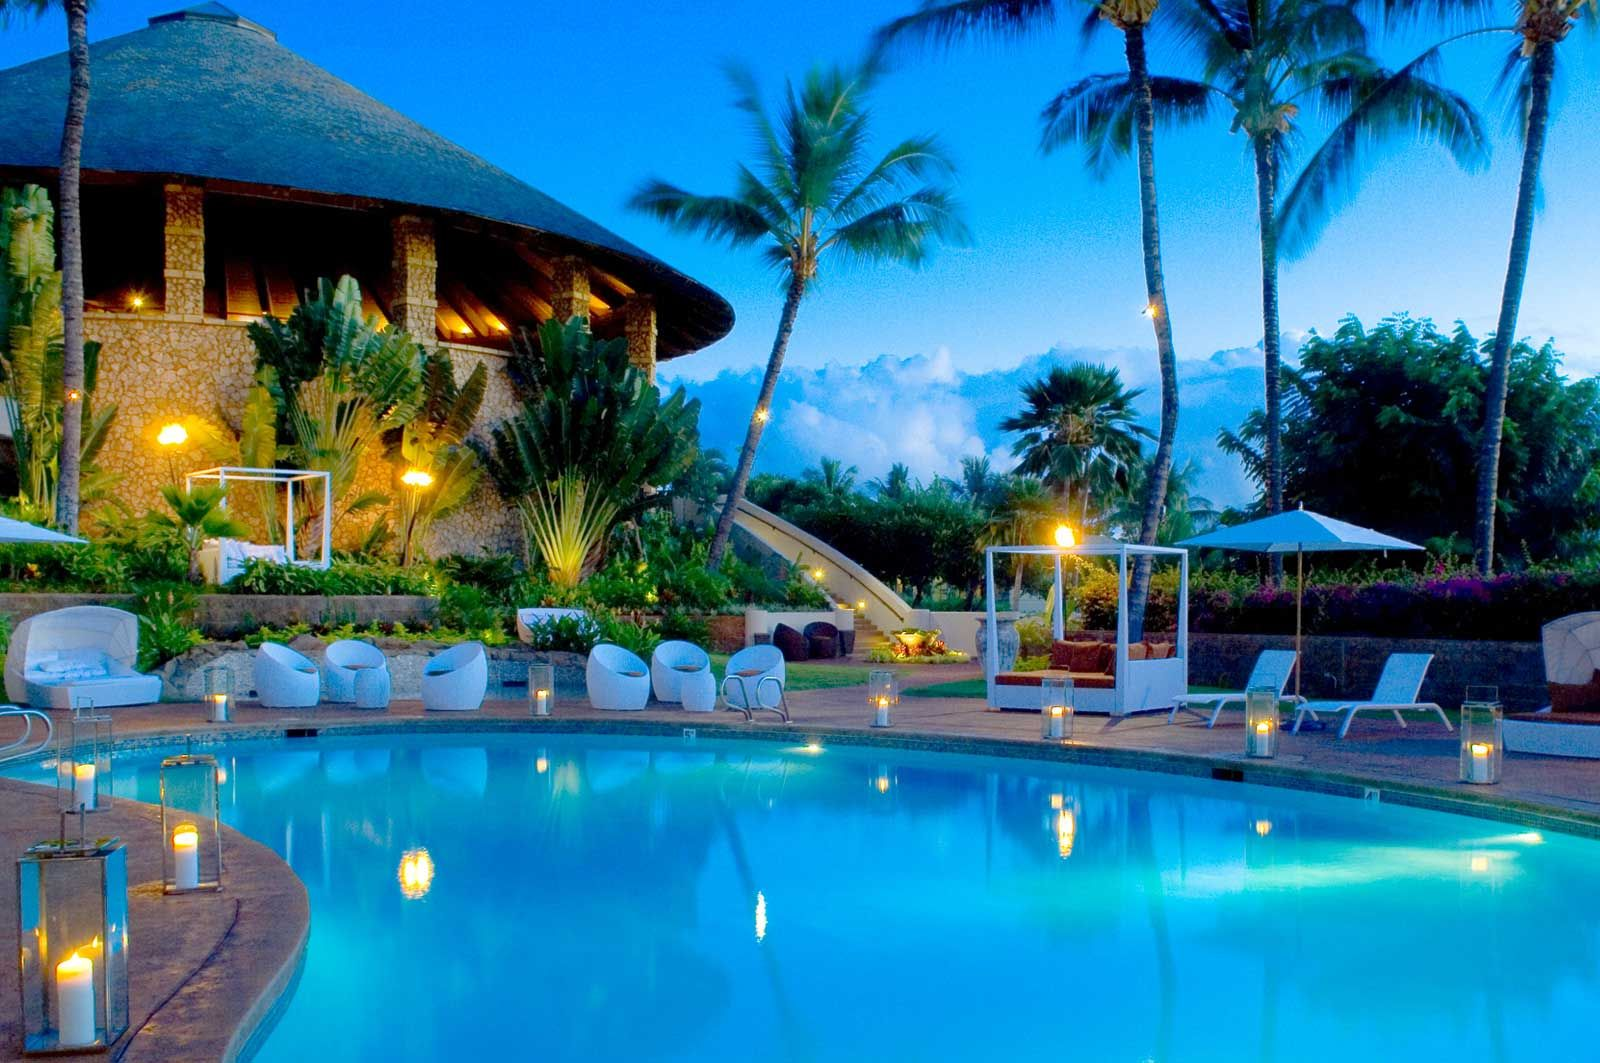 Hotel wailea luxury boutique hotel in maui hawaii our for Luxury hotel accommodation